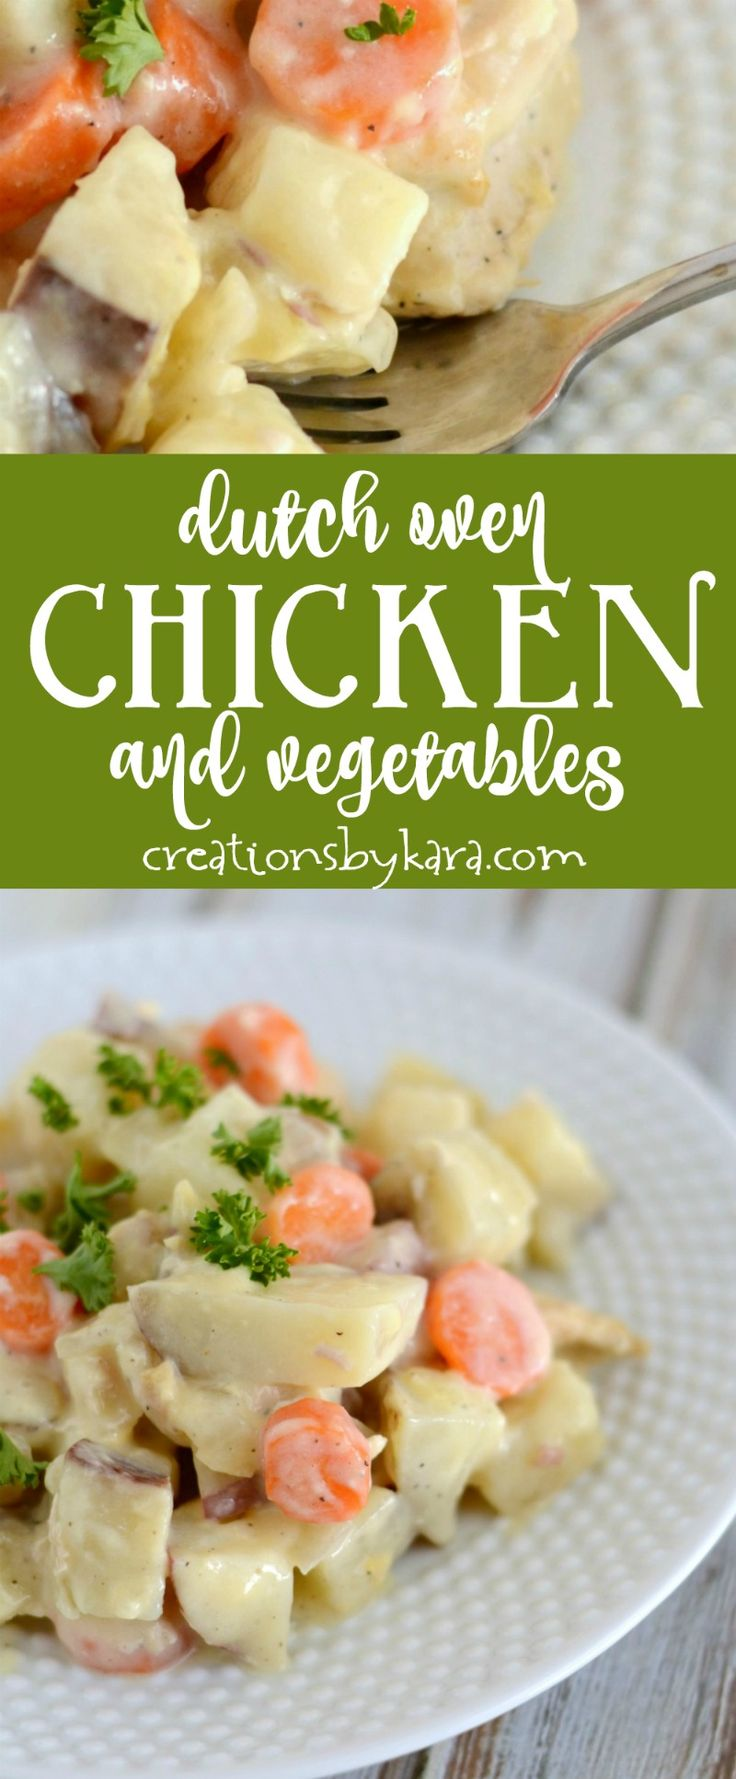 Chicken, potatoes, and carrots in a creamy sauce. Everyone loves this Dutch oven chicken recipe. And you bake it in the oven! via creationsbykara.com